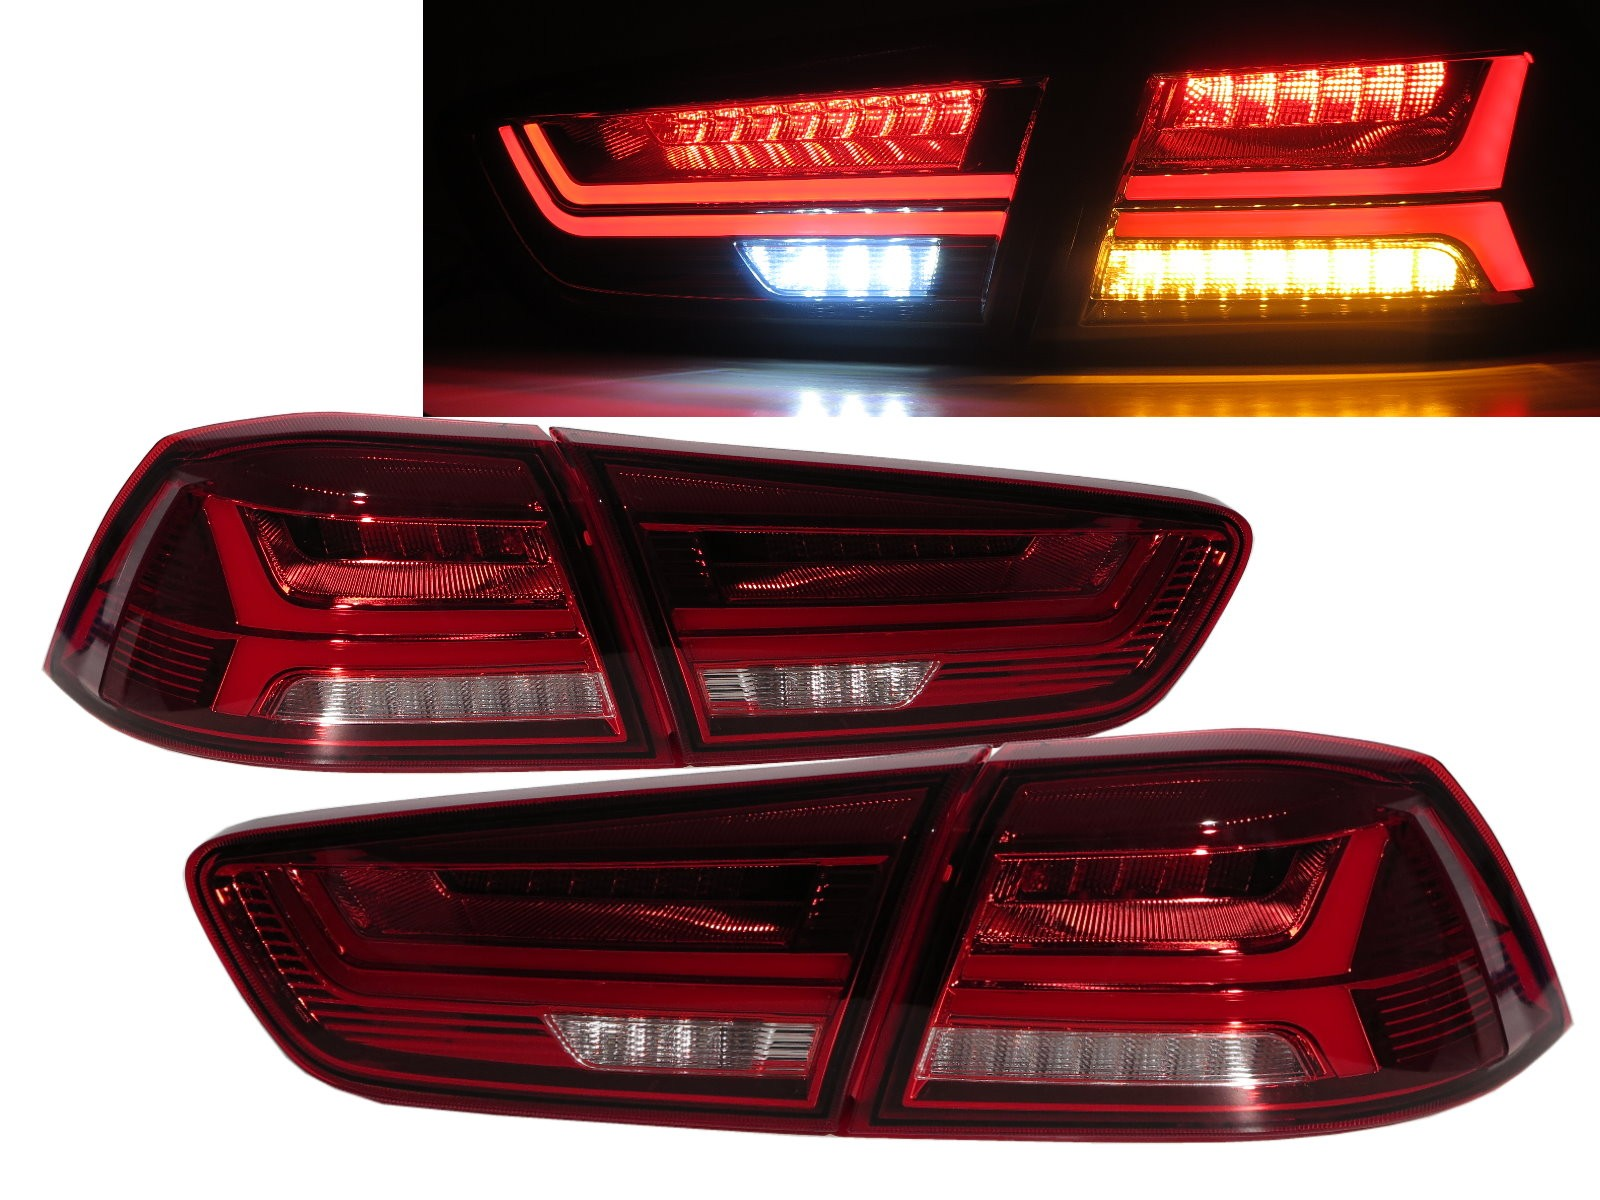 CrazyTheGod LANCER Lancer CY2A 2008-2016 Sedan 4D A6Look LED Tail Rear Light Red/Clear for Mitsubishi